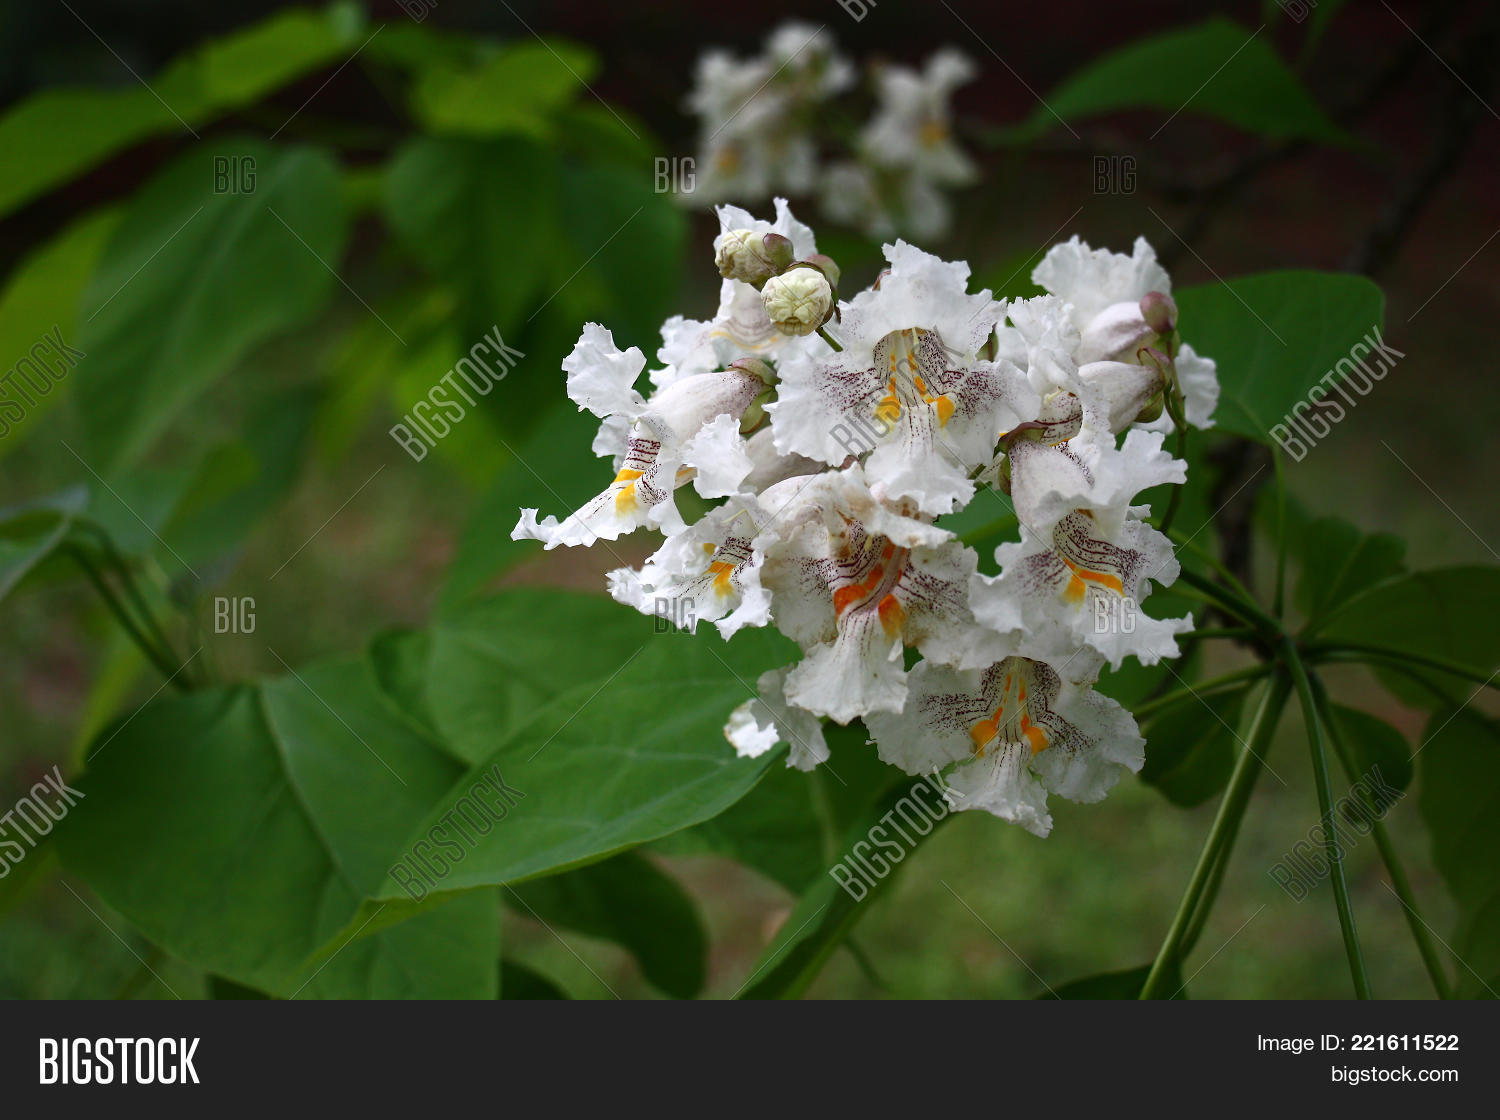 Catalpa bignonioides image photo free trial bigstock the catalpa bignonioides among large green leaves has white flowers with bright stains mightylinksfo